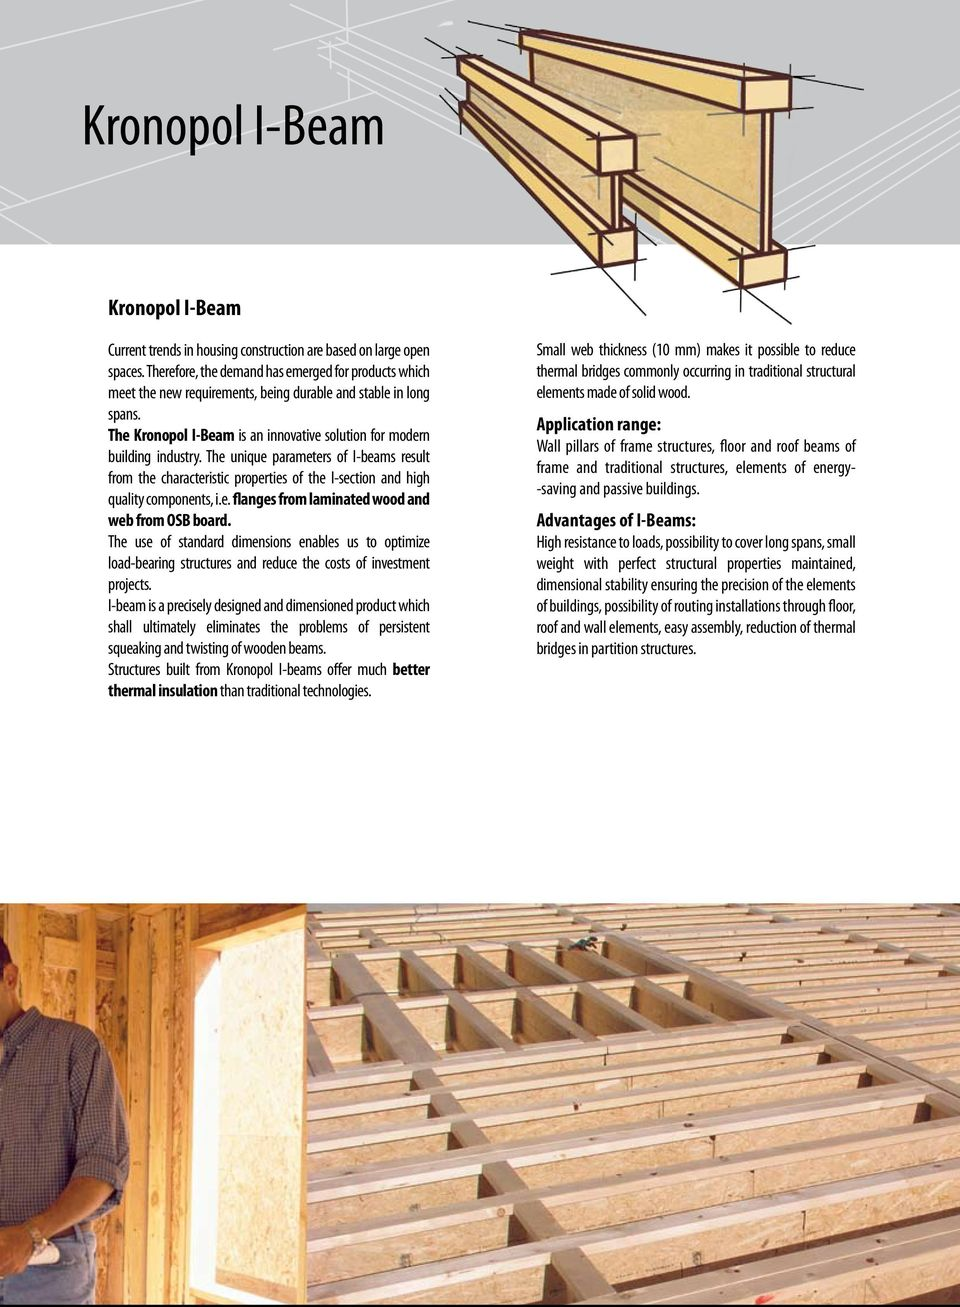 The unique parameters of I-beams result from the characteristic properties of the I-section and high quality components, i.e. flanges from laminated wood and web from OSB board.